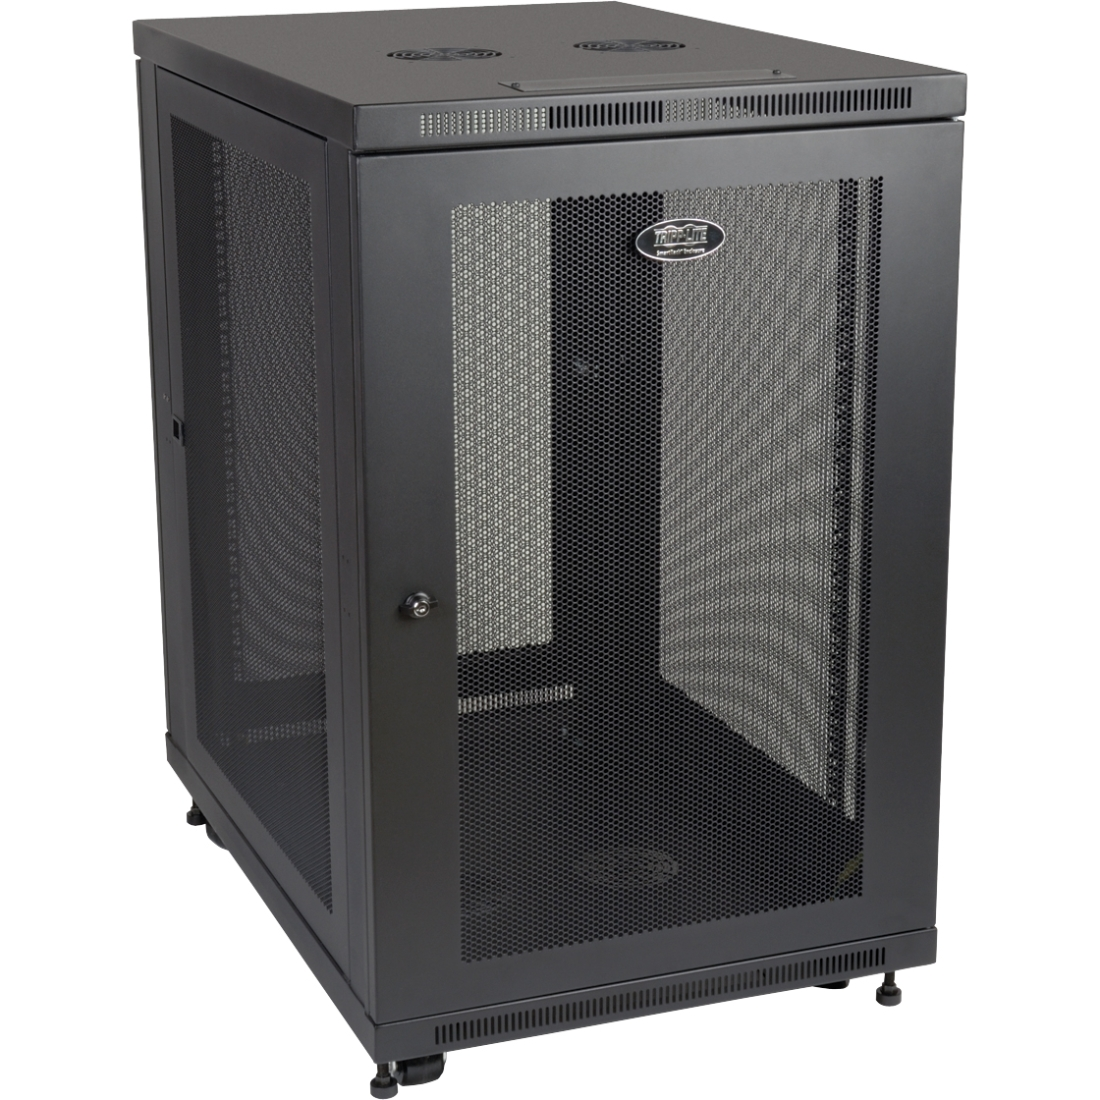 Tripp Lite SR18UB 18U Rack Enclosure Cabinet 33In Deep